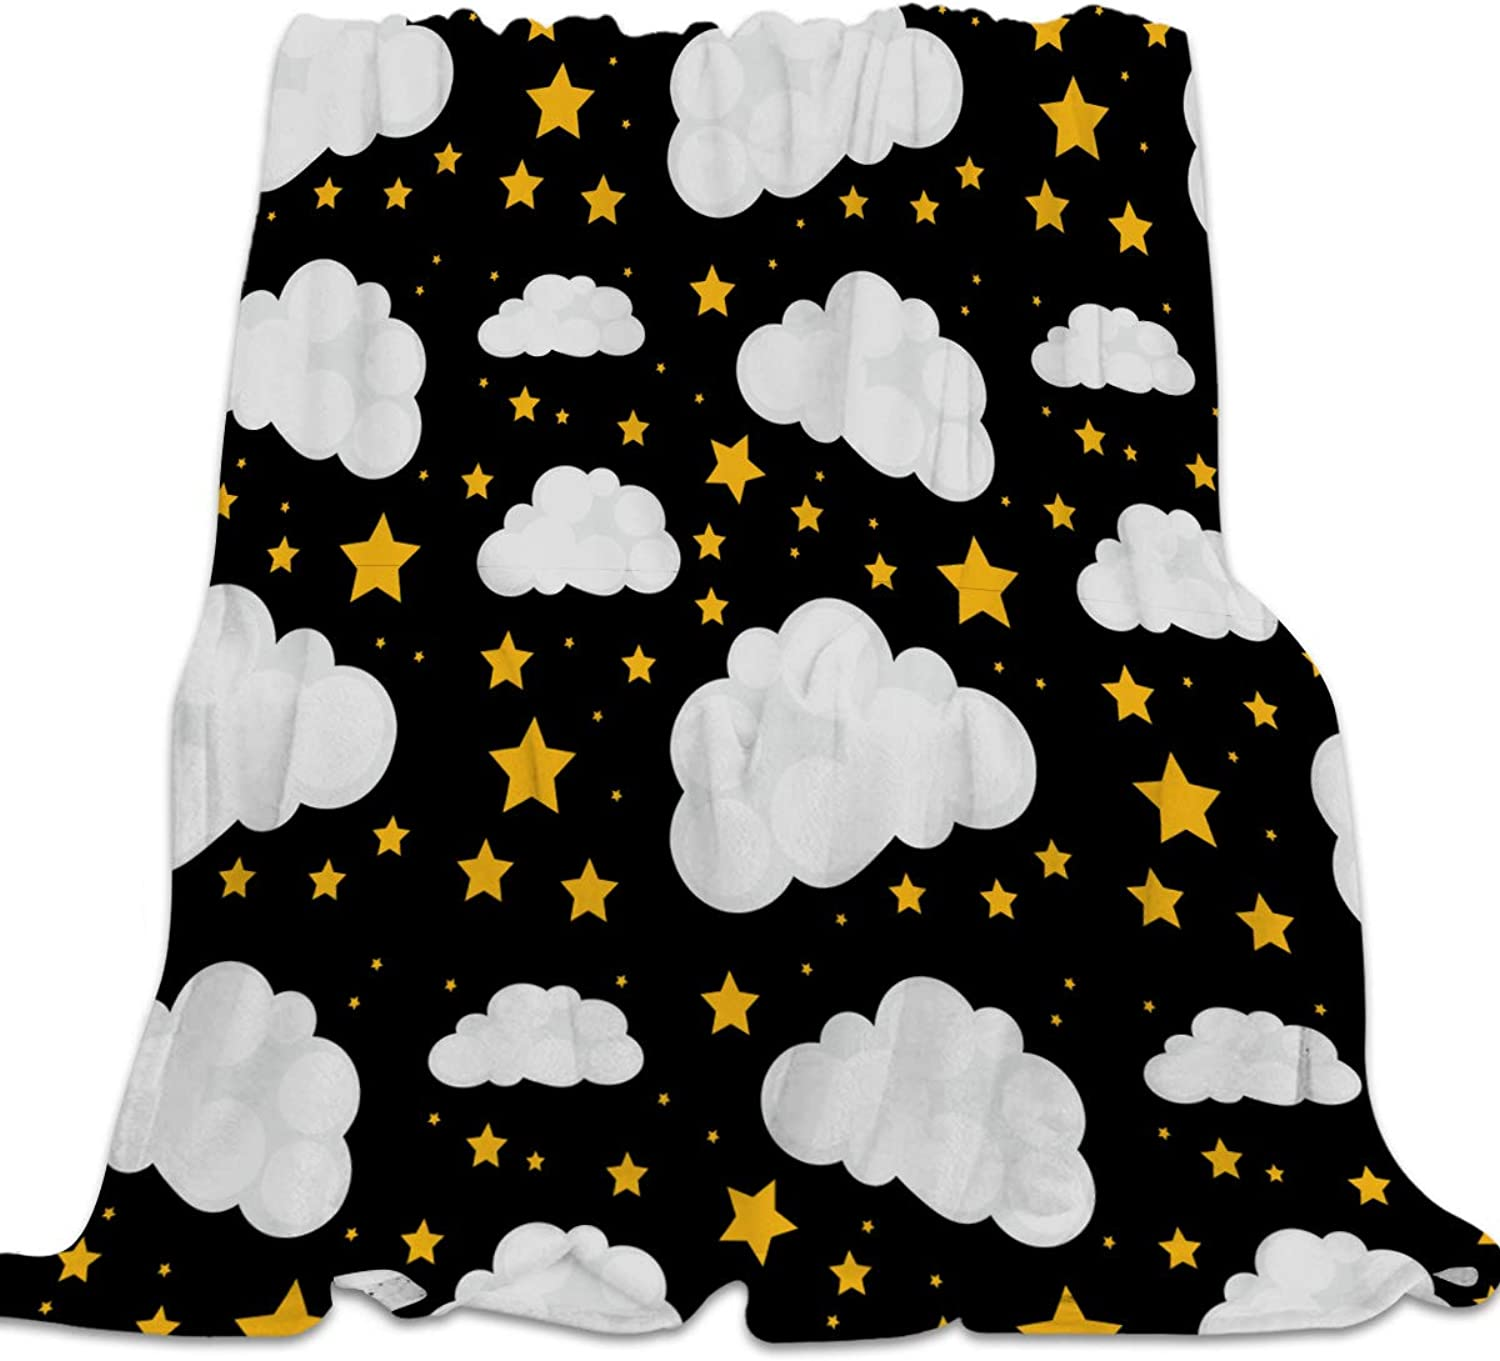 39x49 Inch Flannel Fleece Bed Blanket Soft Throw-Blankets for Girls Boys,Black and White Star Clouds Pattern,Lightweight Warm Kids Blankets for Bedroom Living Room Sofa Couch Home Decor